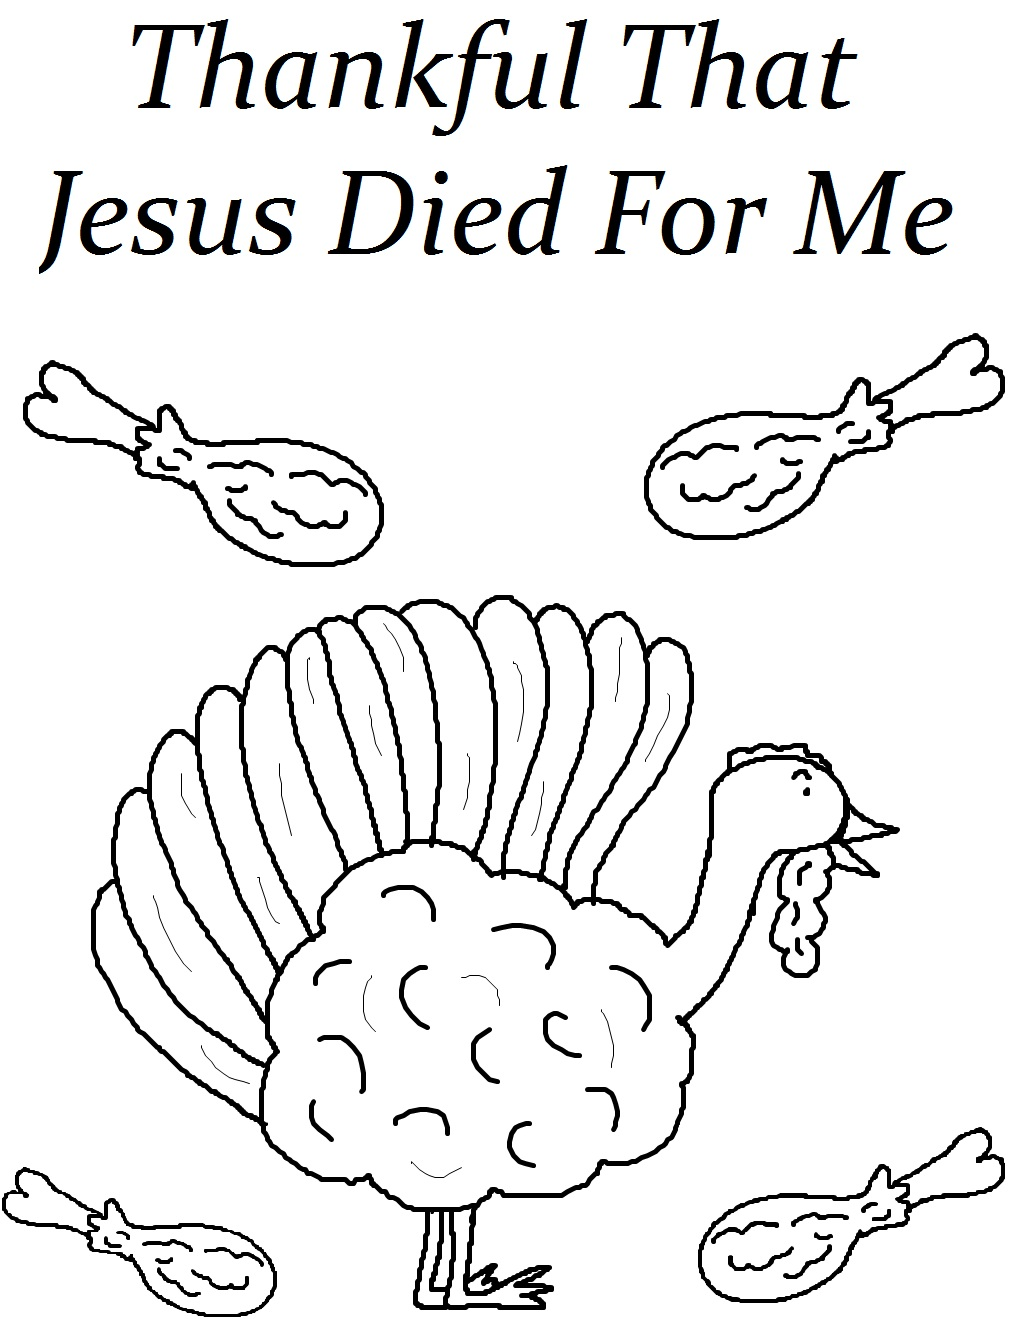 Church house collection blog turkey coloring pages for Thanksgiving coloring pages for children s church